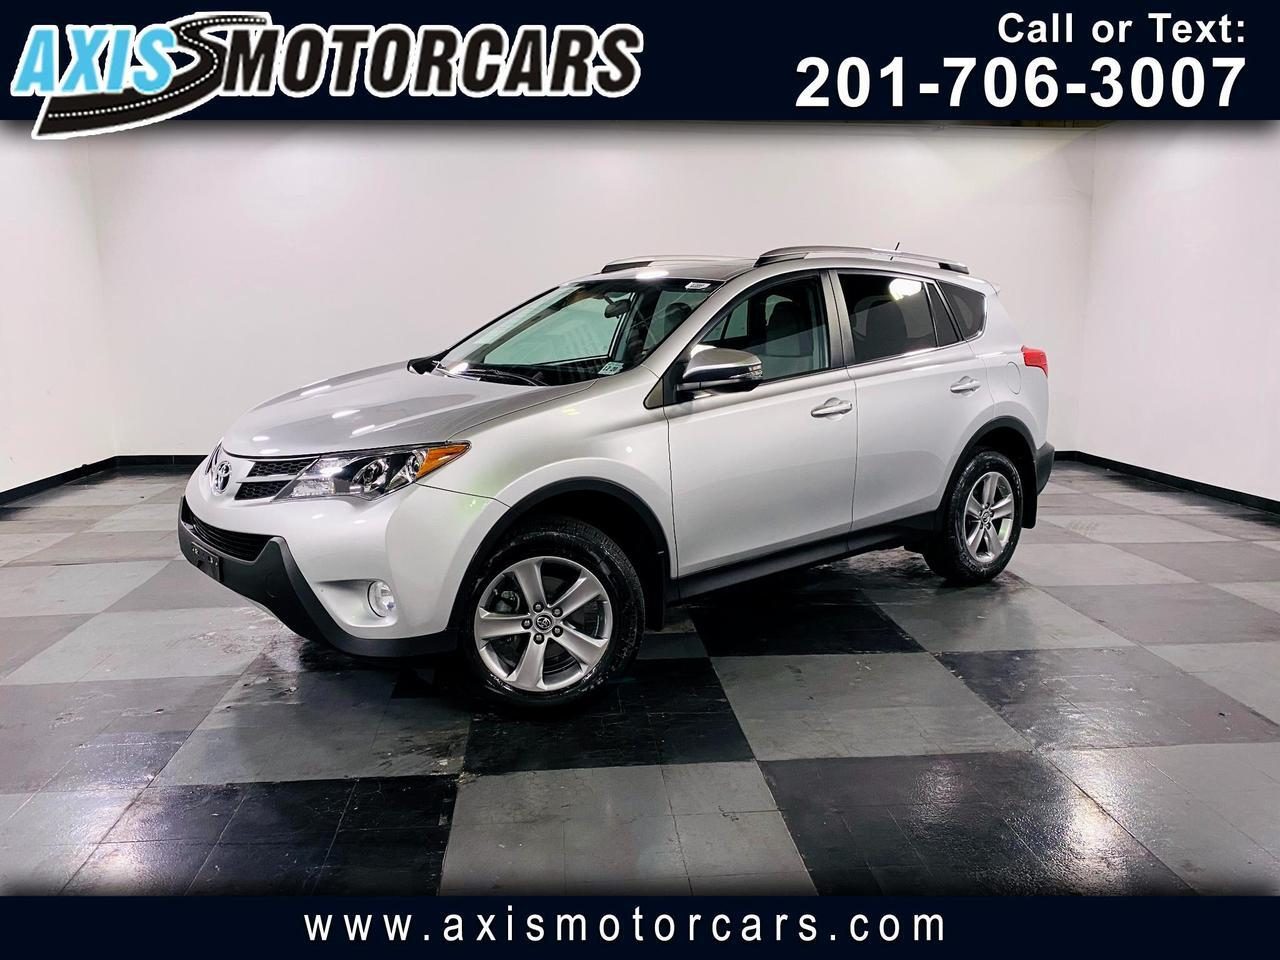 2015 Toyota RAV4 AWD4 dr XLE w/Backup Camera Navigation Sun Roof Jersey City NJ